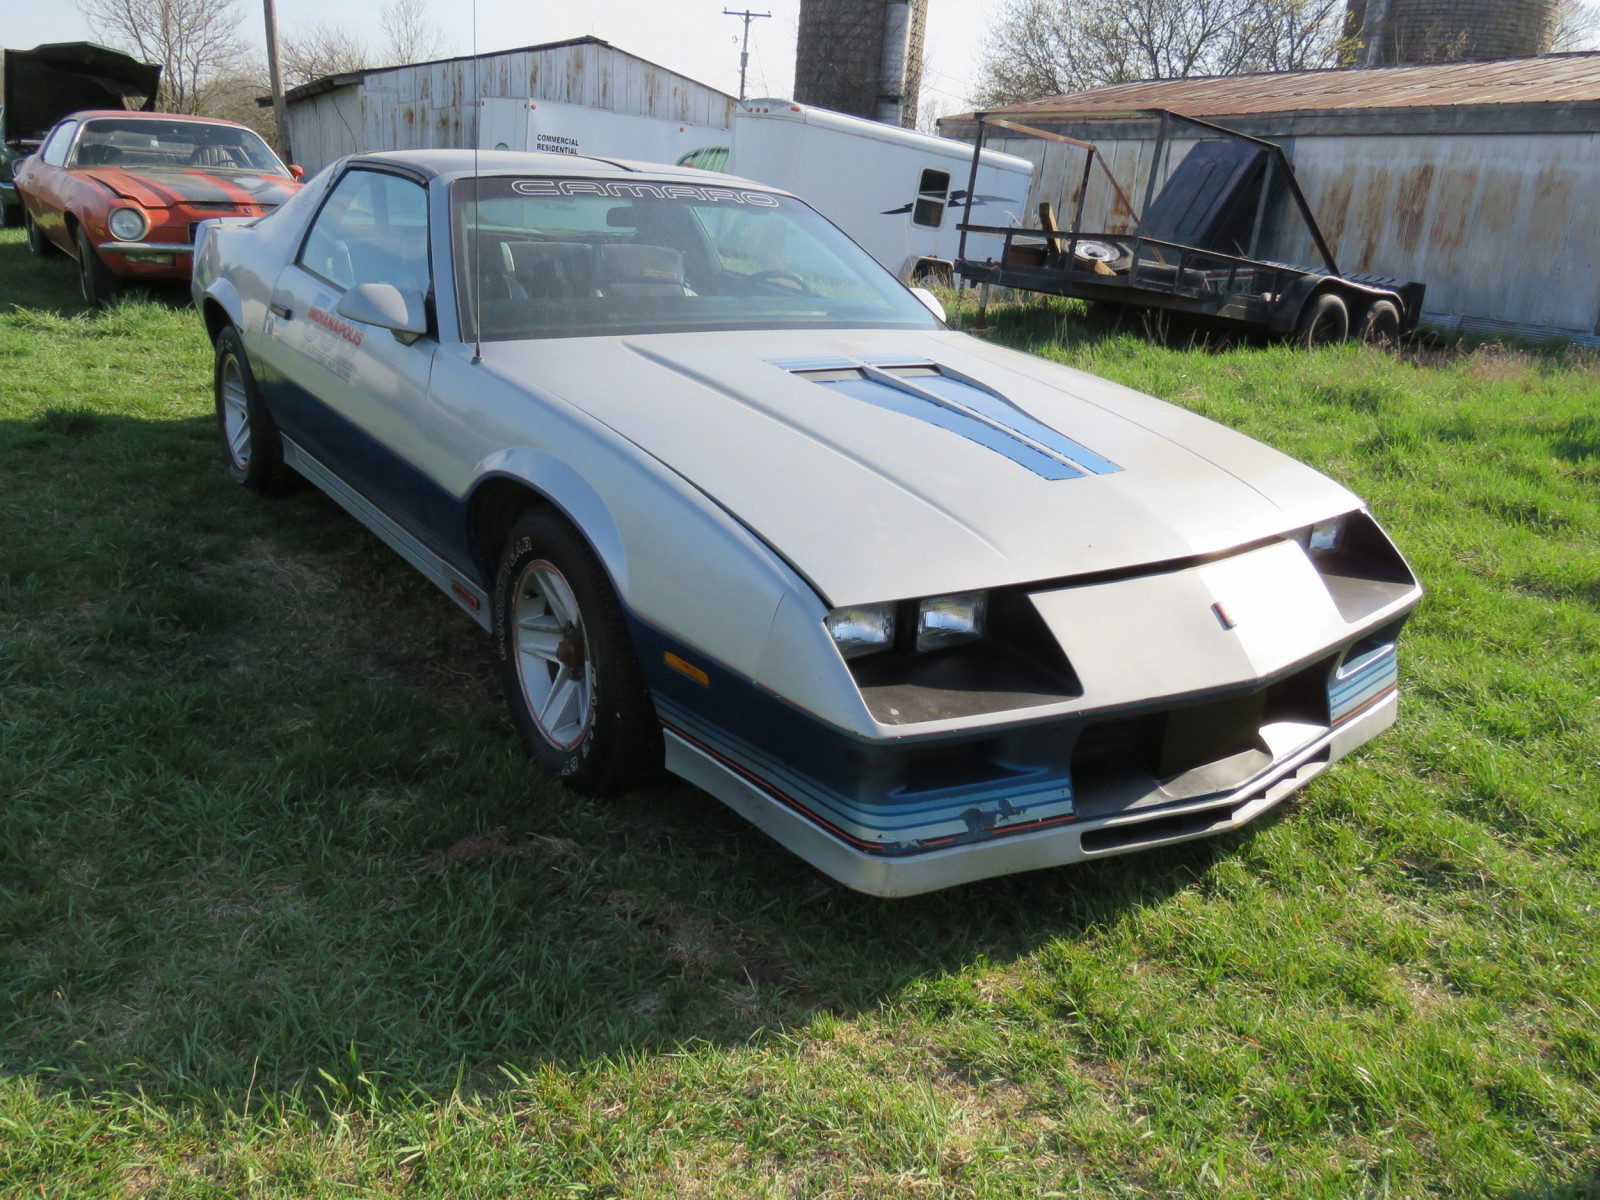 1982 Chevrolet Camaro Indianpolis 500 Edition Pace Car - Image 4